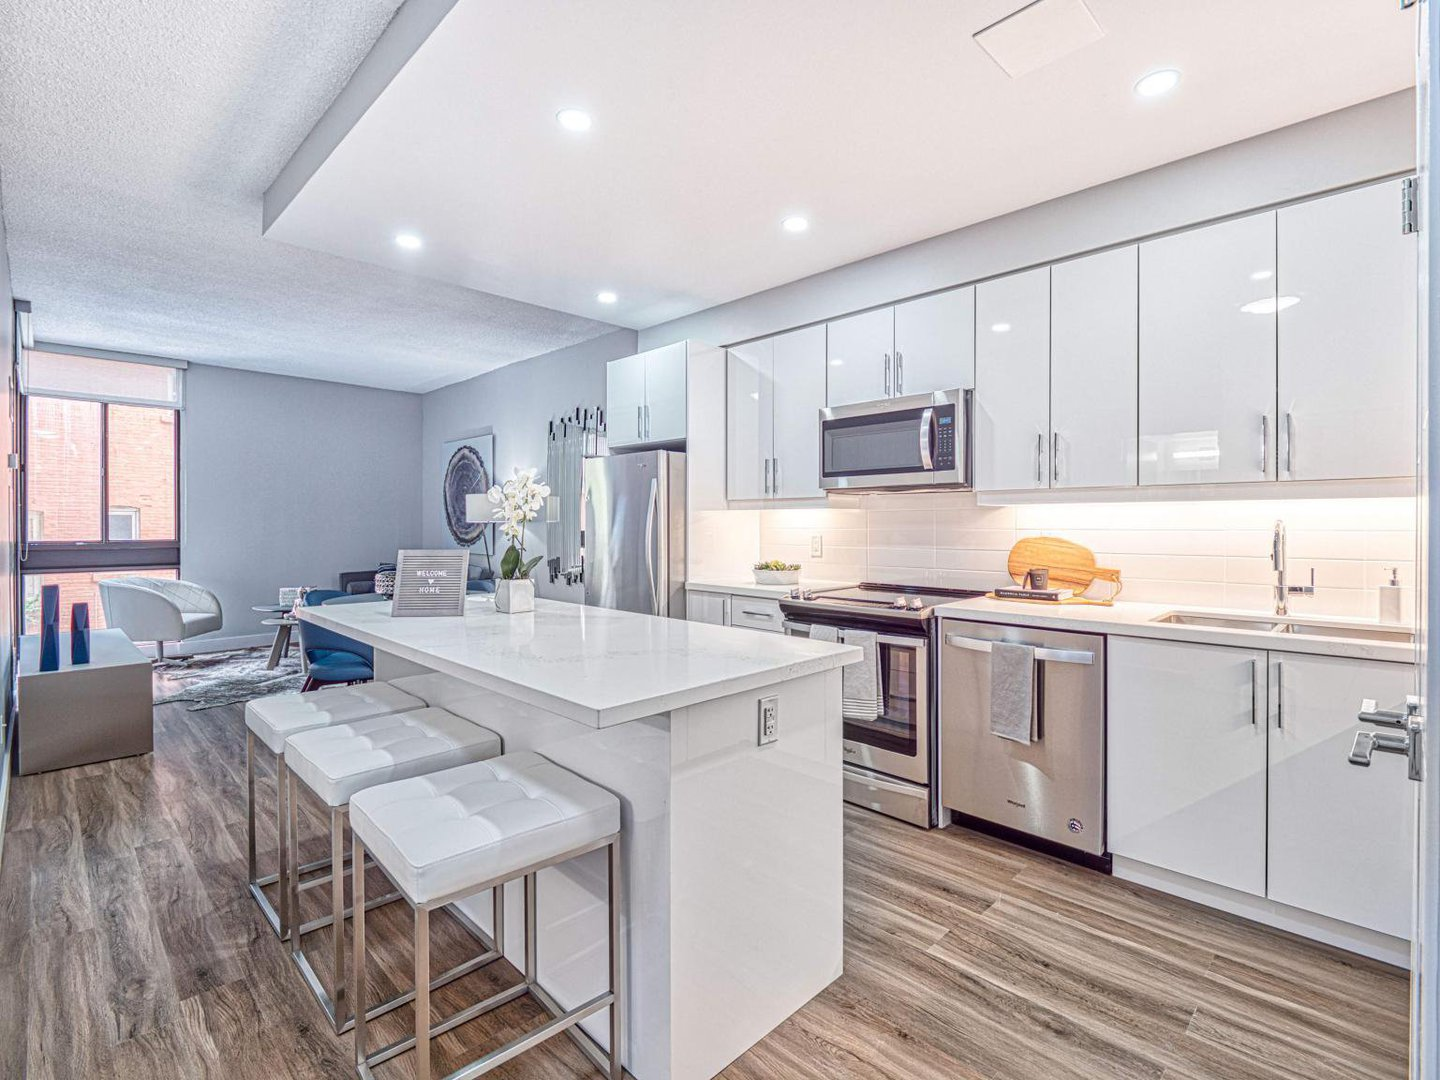 Magnificent Rentals Ca Toronto Apartments Condos And Houses For Rent Download Free Architecture Designs Rallybritishbridgeorg